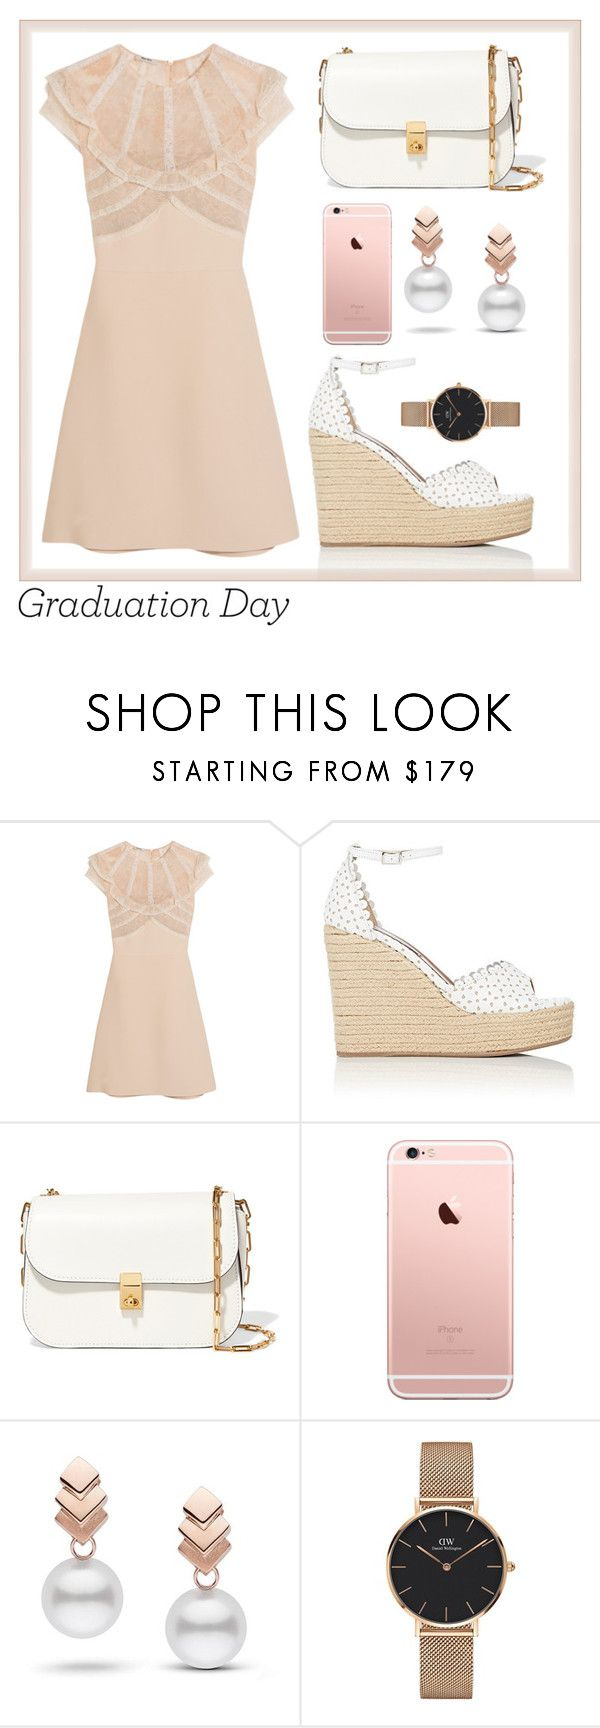 """Graduation day"" by aashna-makkar ❤ liked on Polyvore featuring Miu Miu, Tabitha Simmons, Valentino, Escalier, Daniel Wellington, dress, college, pastel and contestentry"